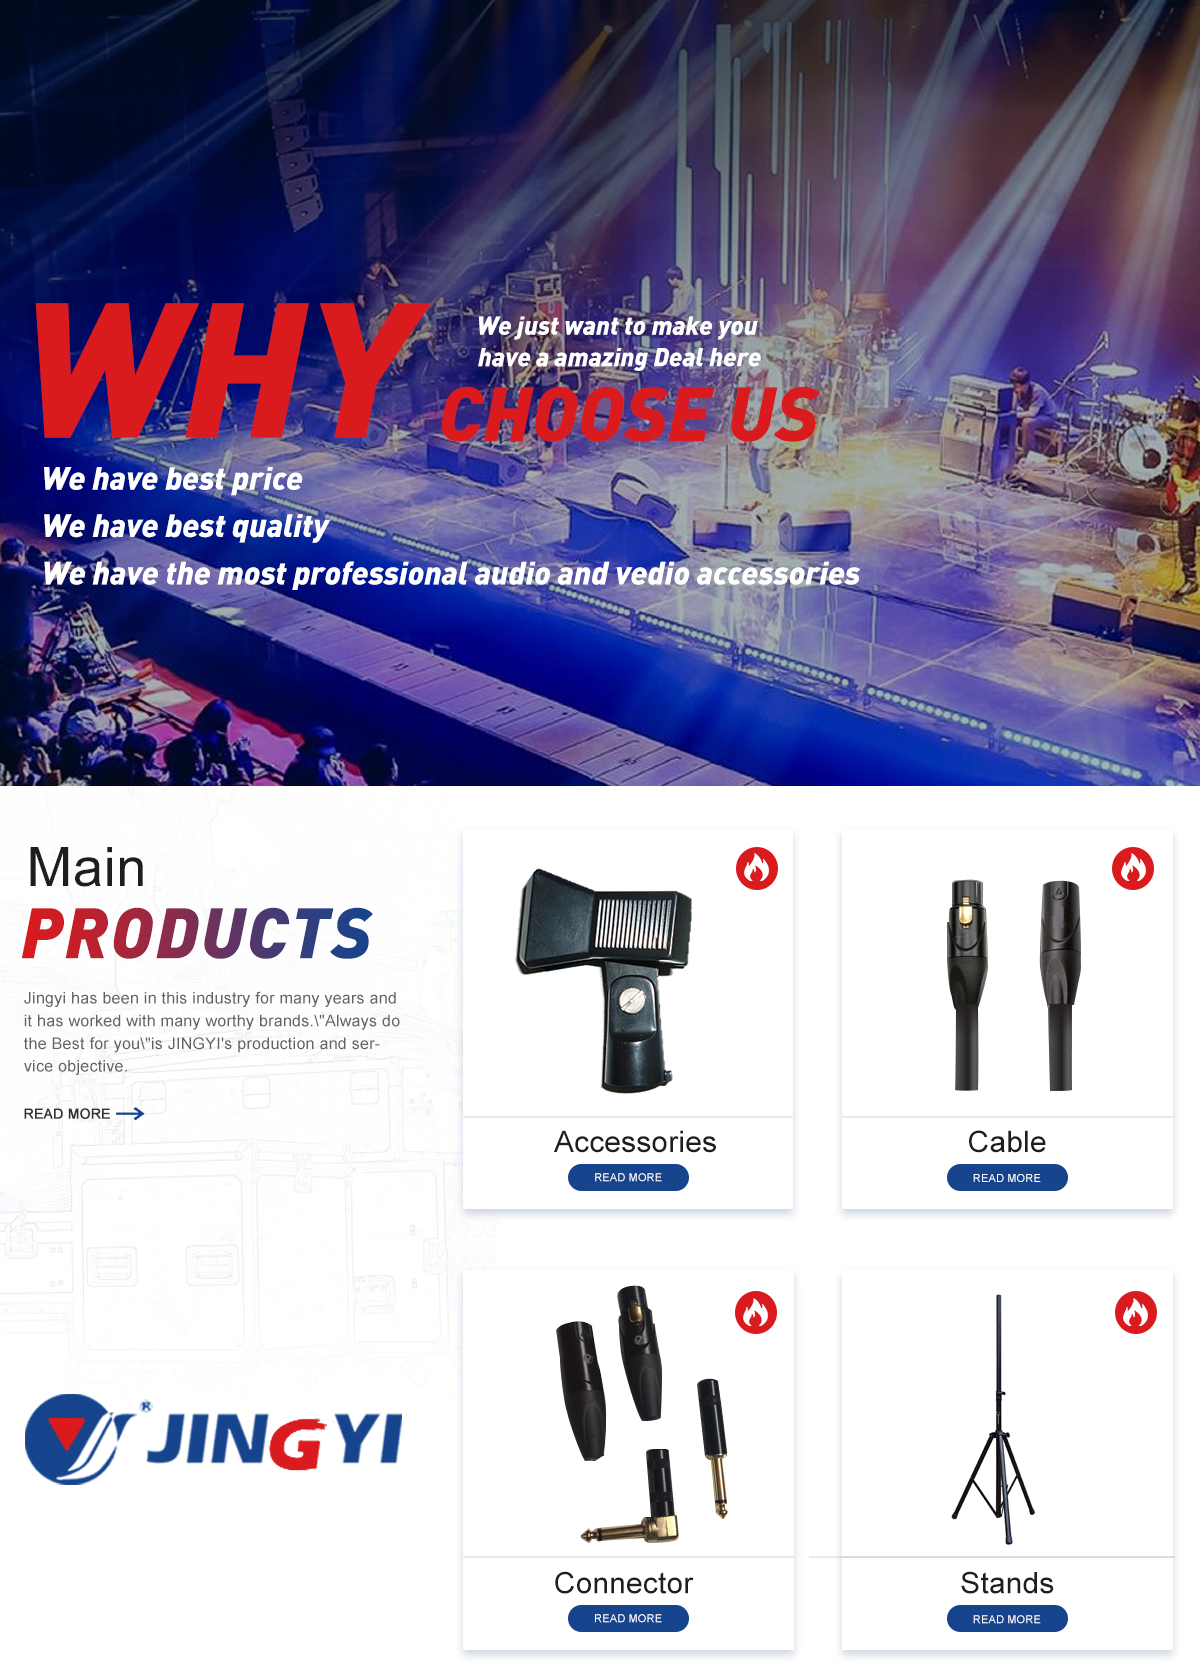 Ningbo Jingyi Electronic Co Ltd Audio Connector Stage Kabel Mic Mono Kecil 20 Meter It Is A Member Of Association Group Goods And Material Chinese Theatrical Festival The Factory Site About 7000 Square Meters